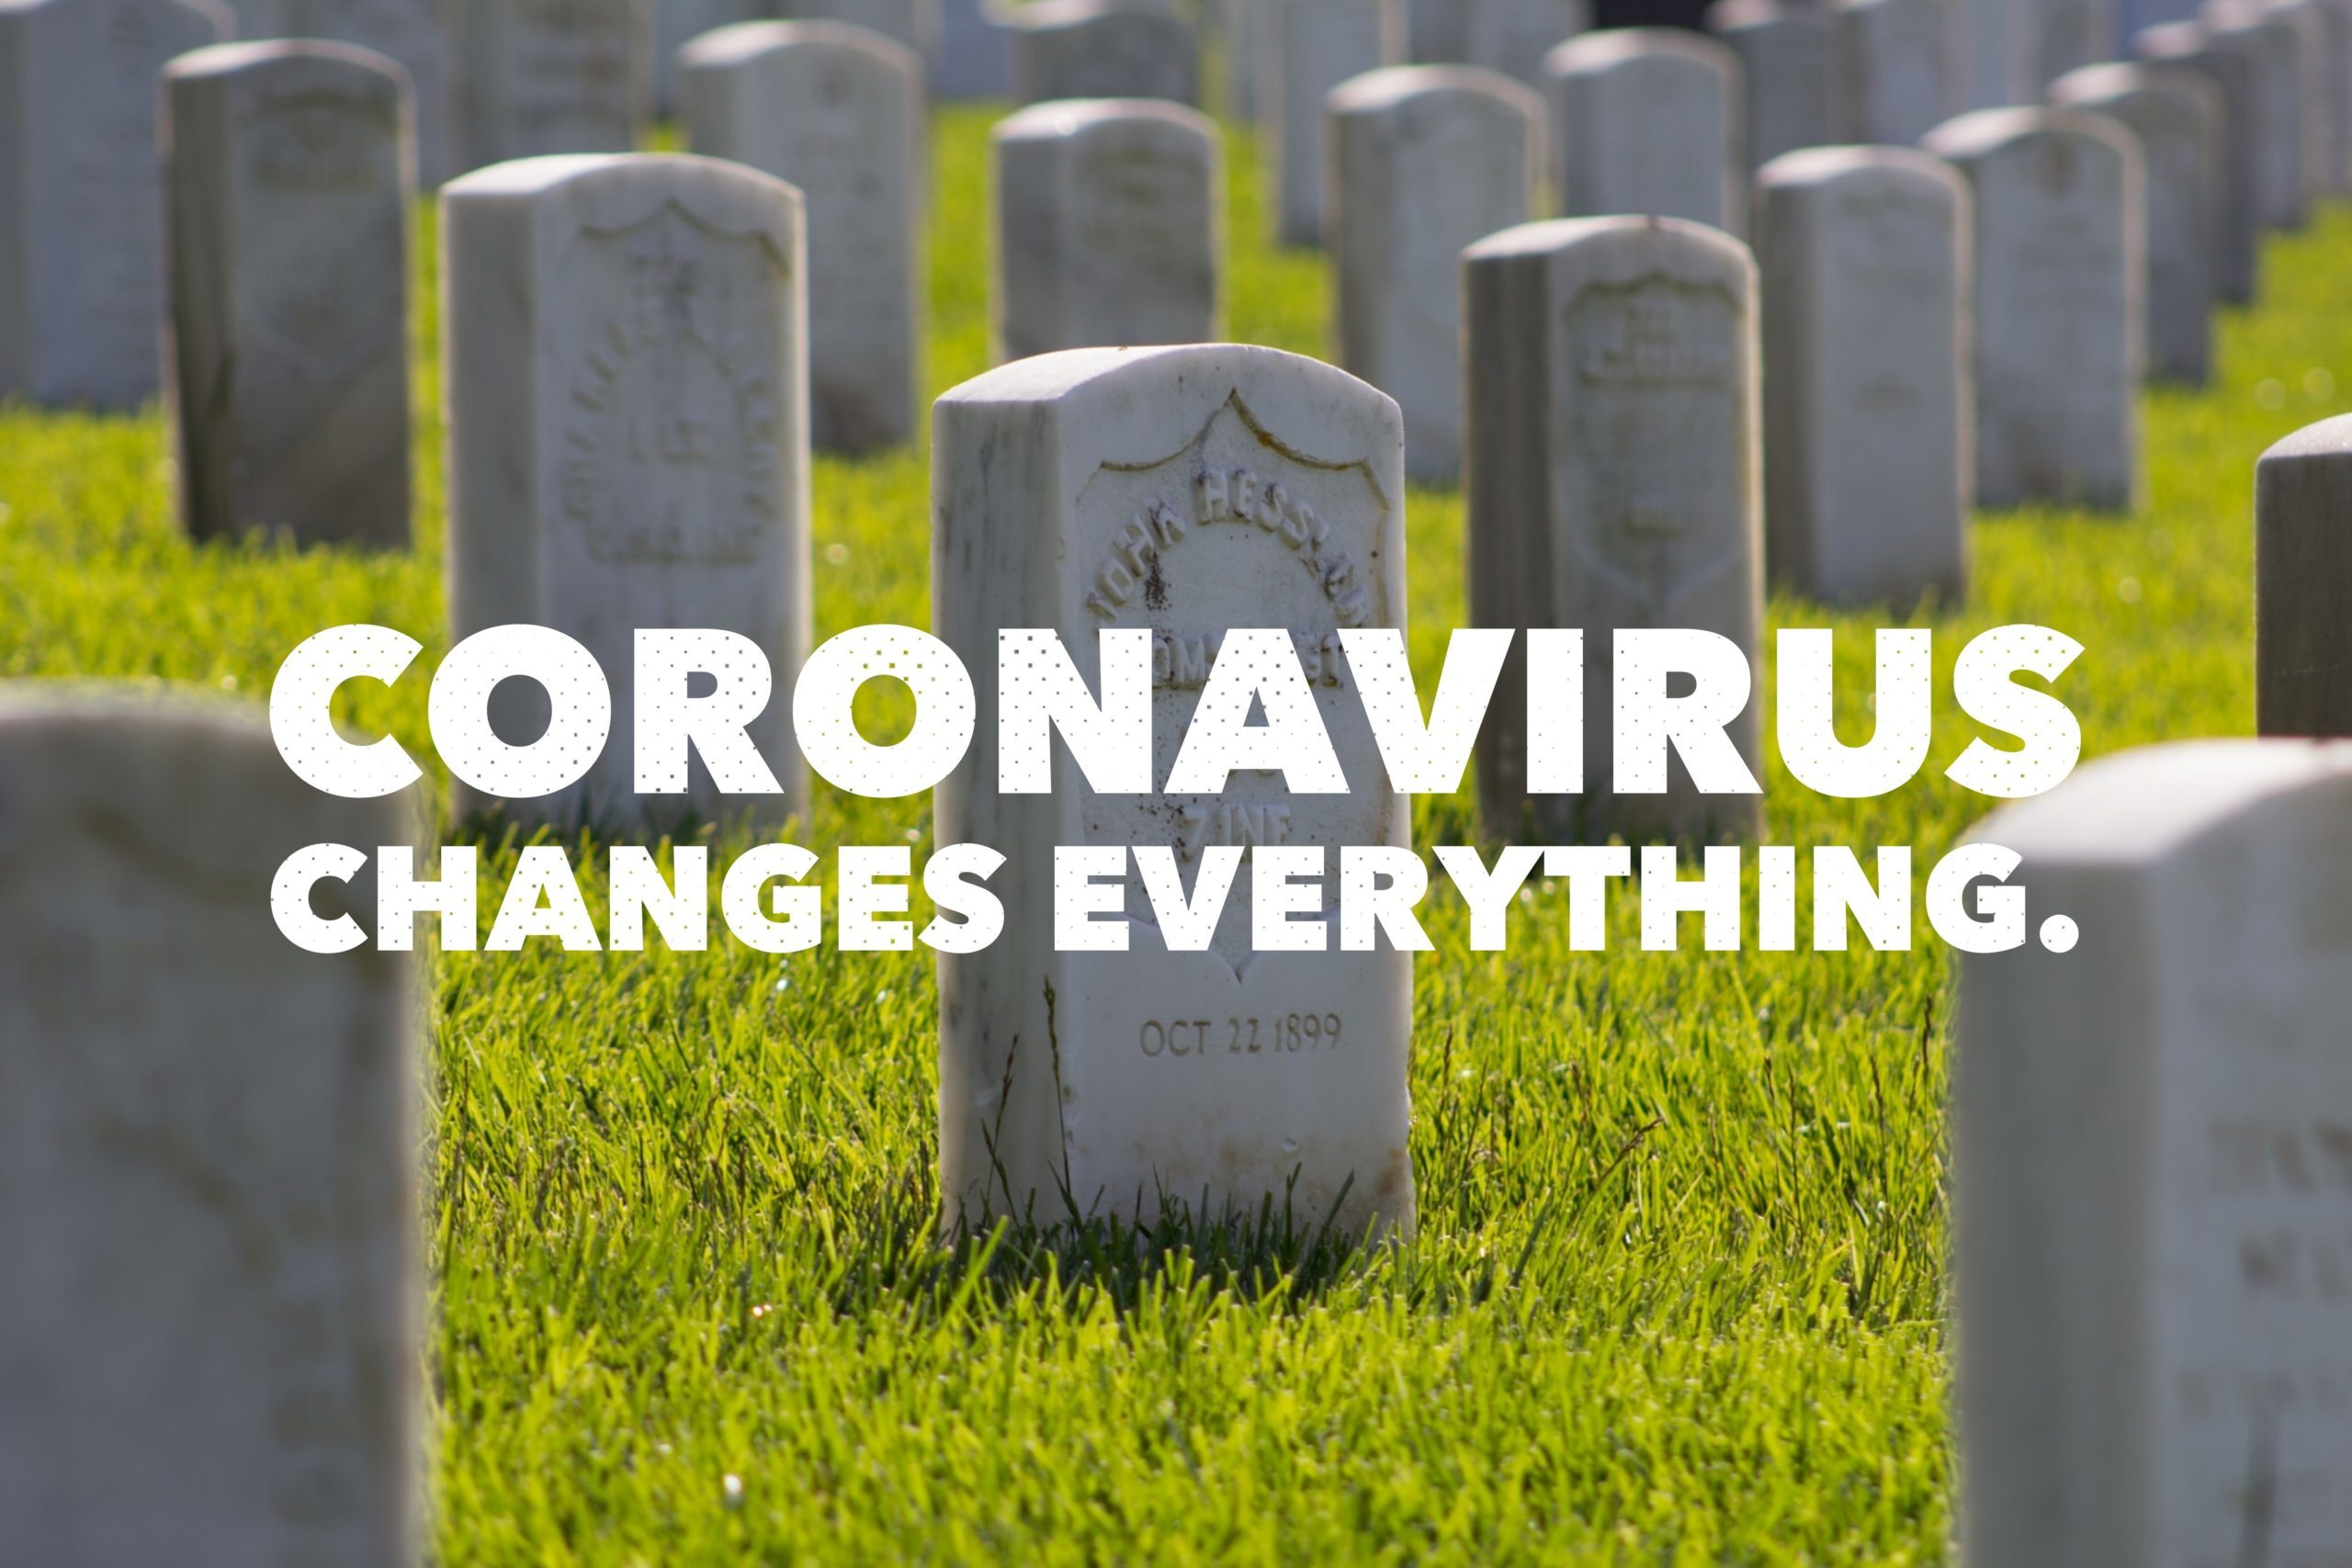 Coronavirus Changes Everything.